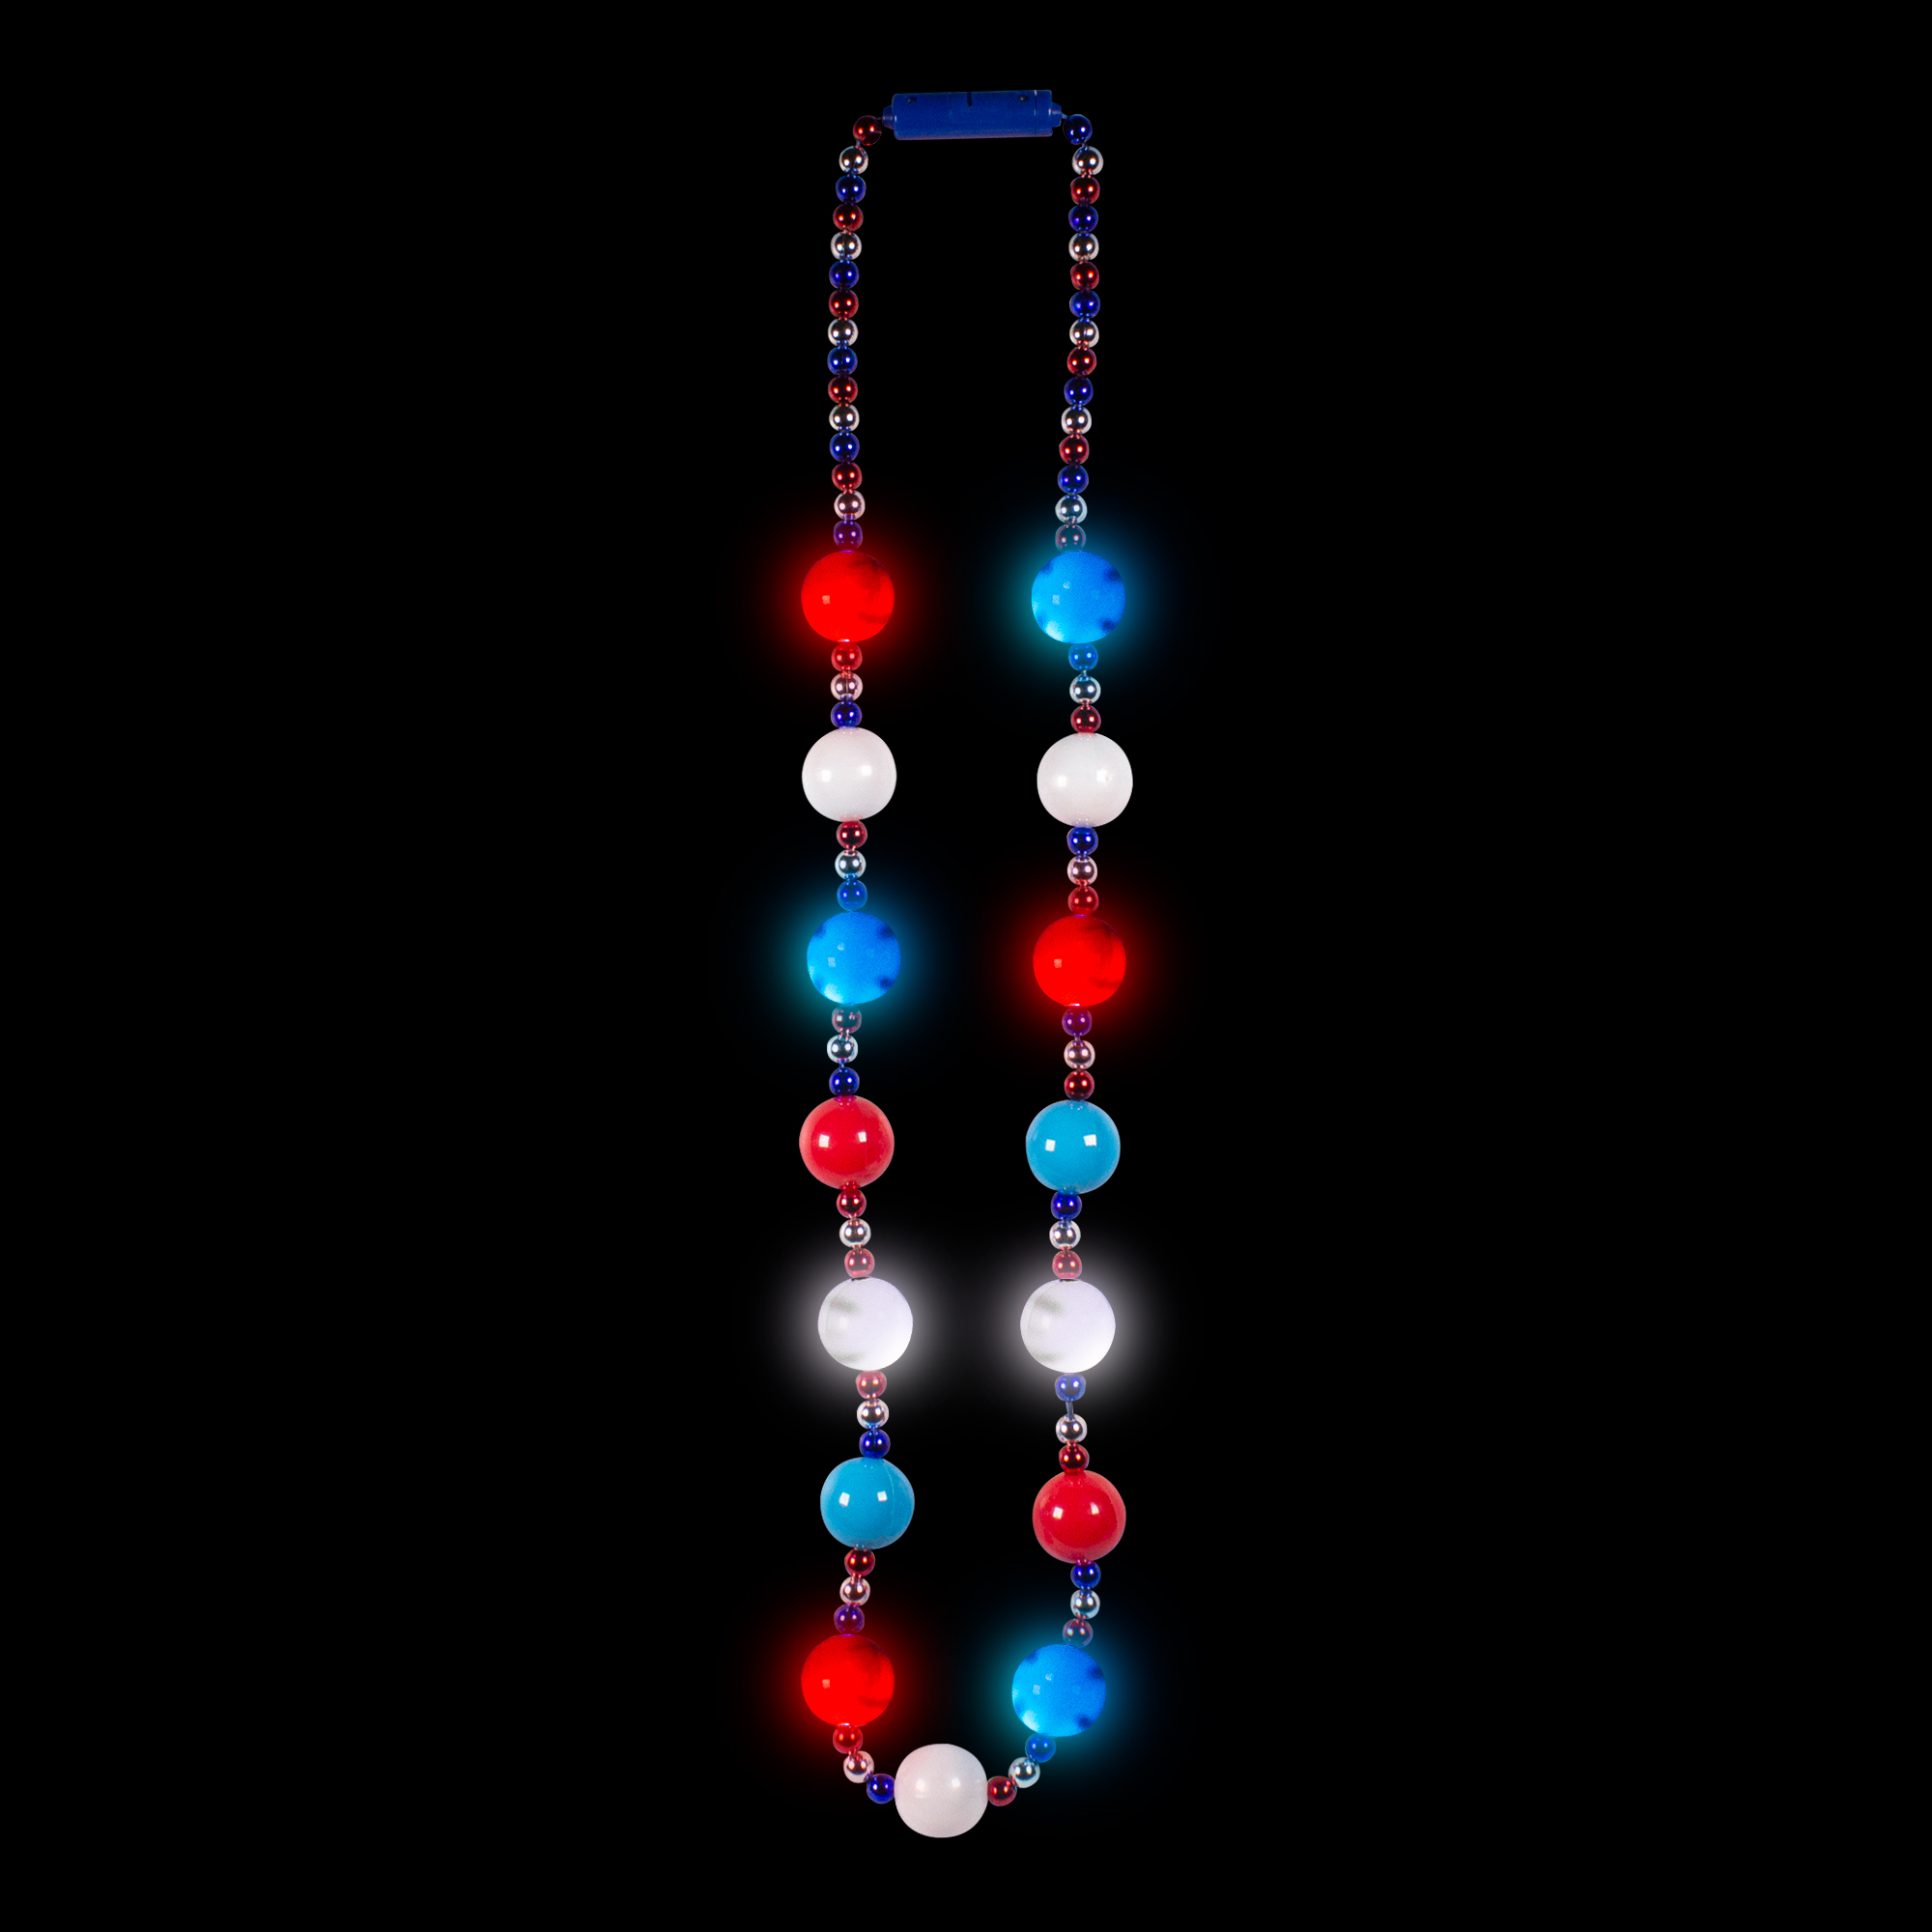 PATRIOTIC BALL BEADS NECKLACE 15X30MM BALLS 8 LED